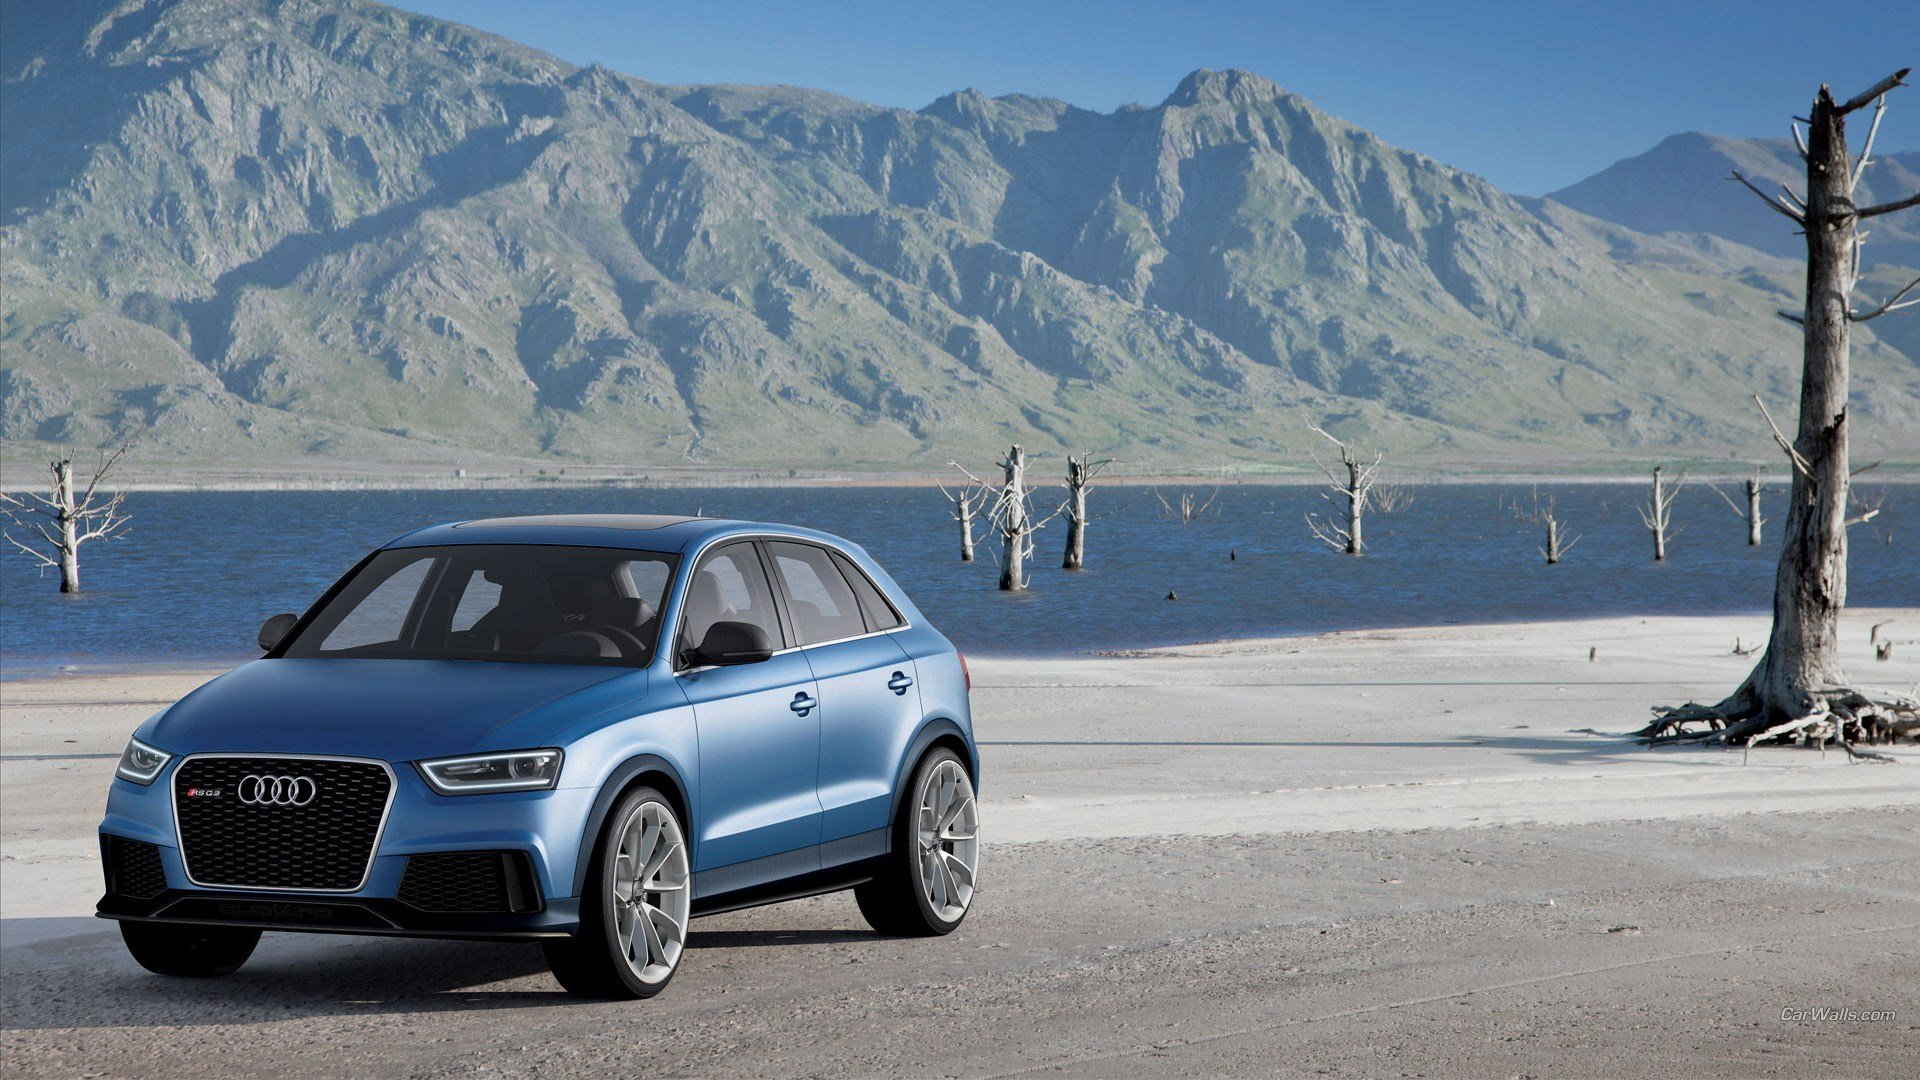 Latest Audi Q3 Car Blue Cars Wallpapers Hd Desktop And Mobile Free Download